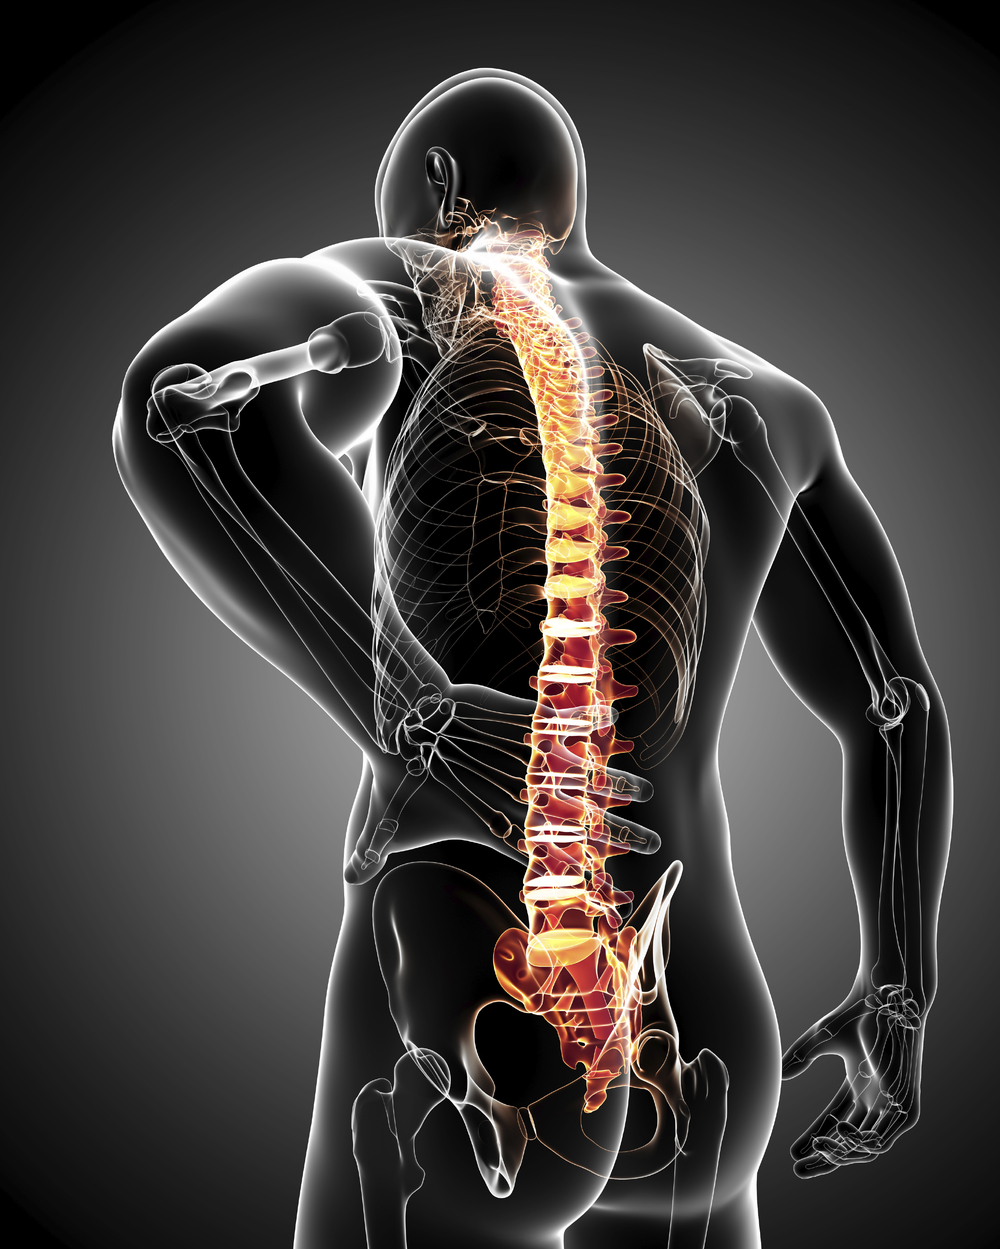 Our goal is to restore structure and function using evidence-based chiropractic techniques.